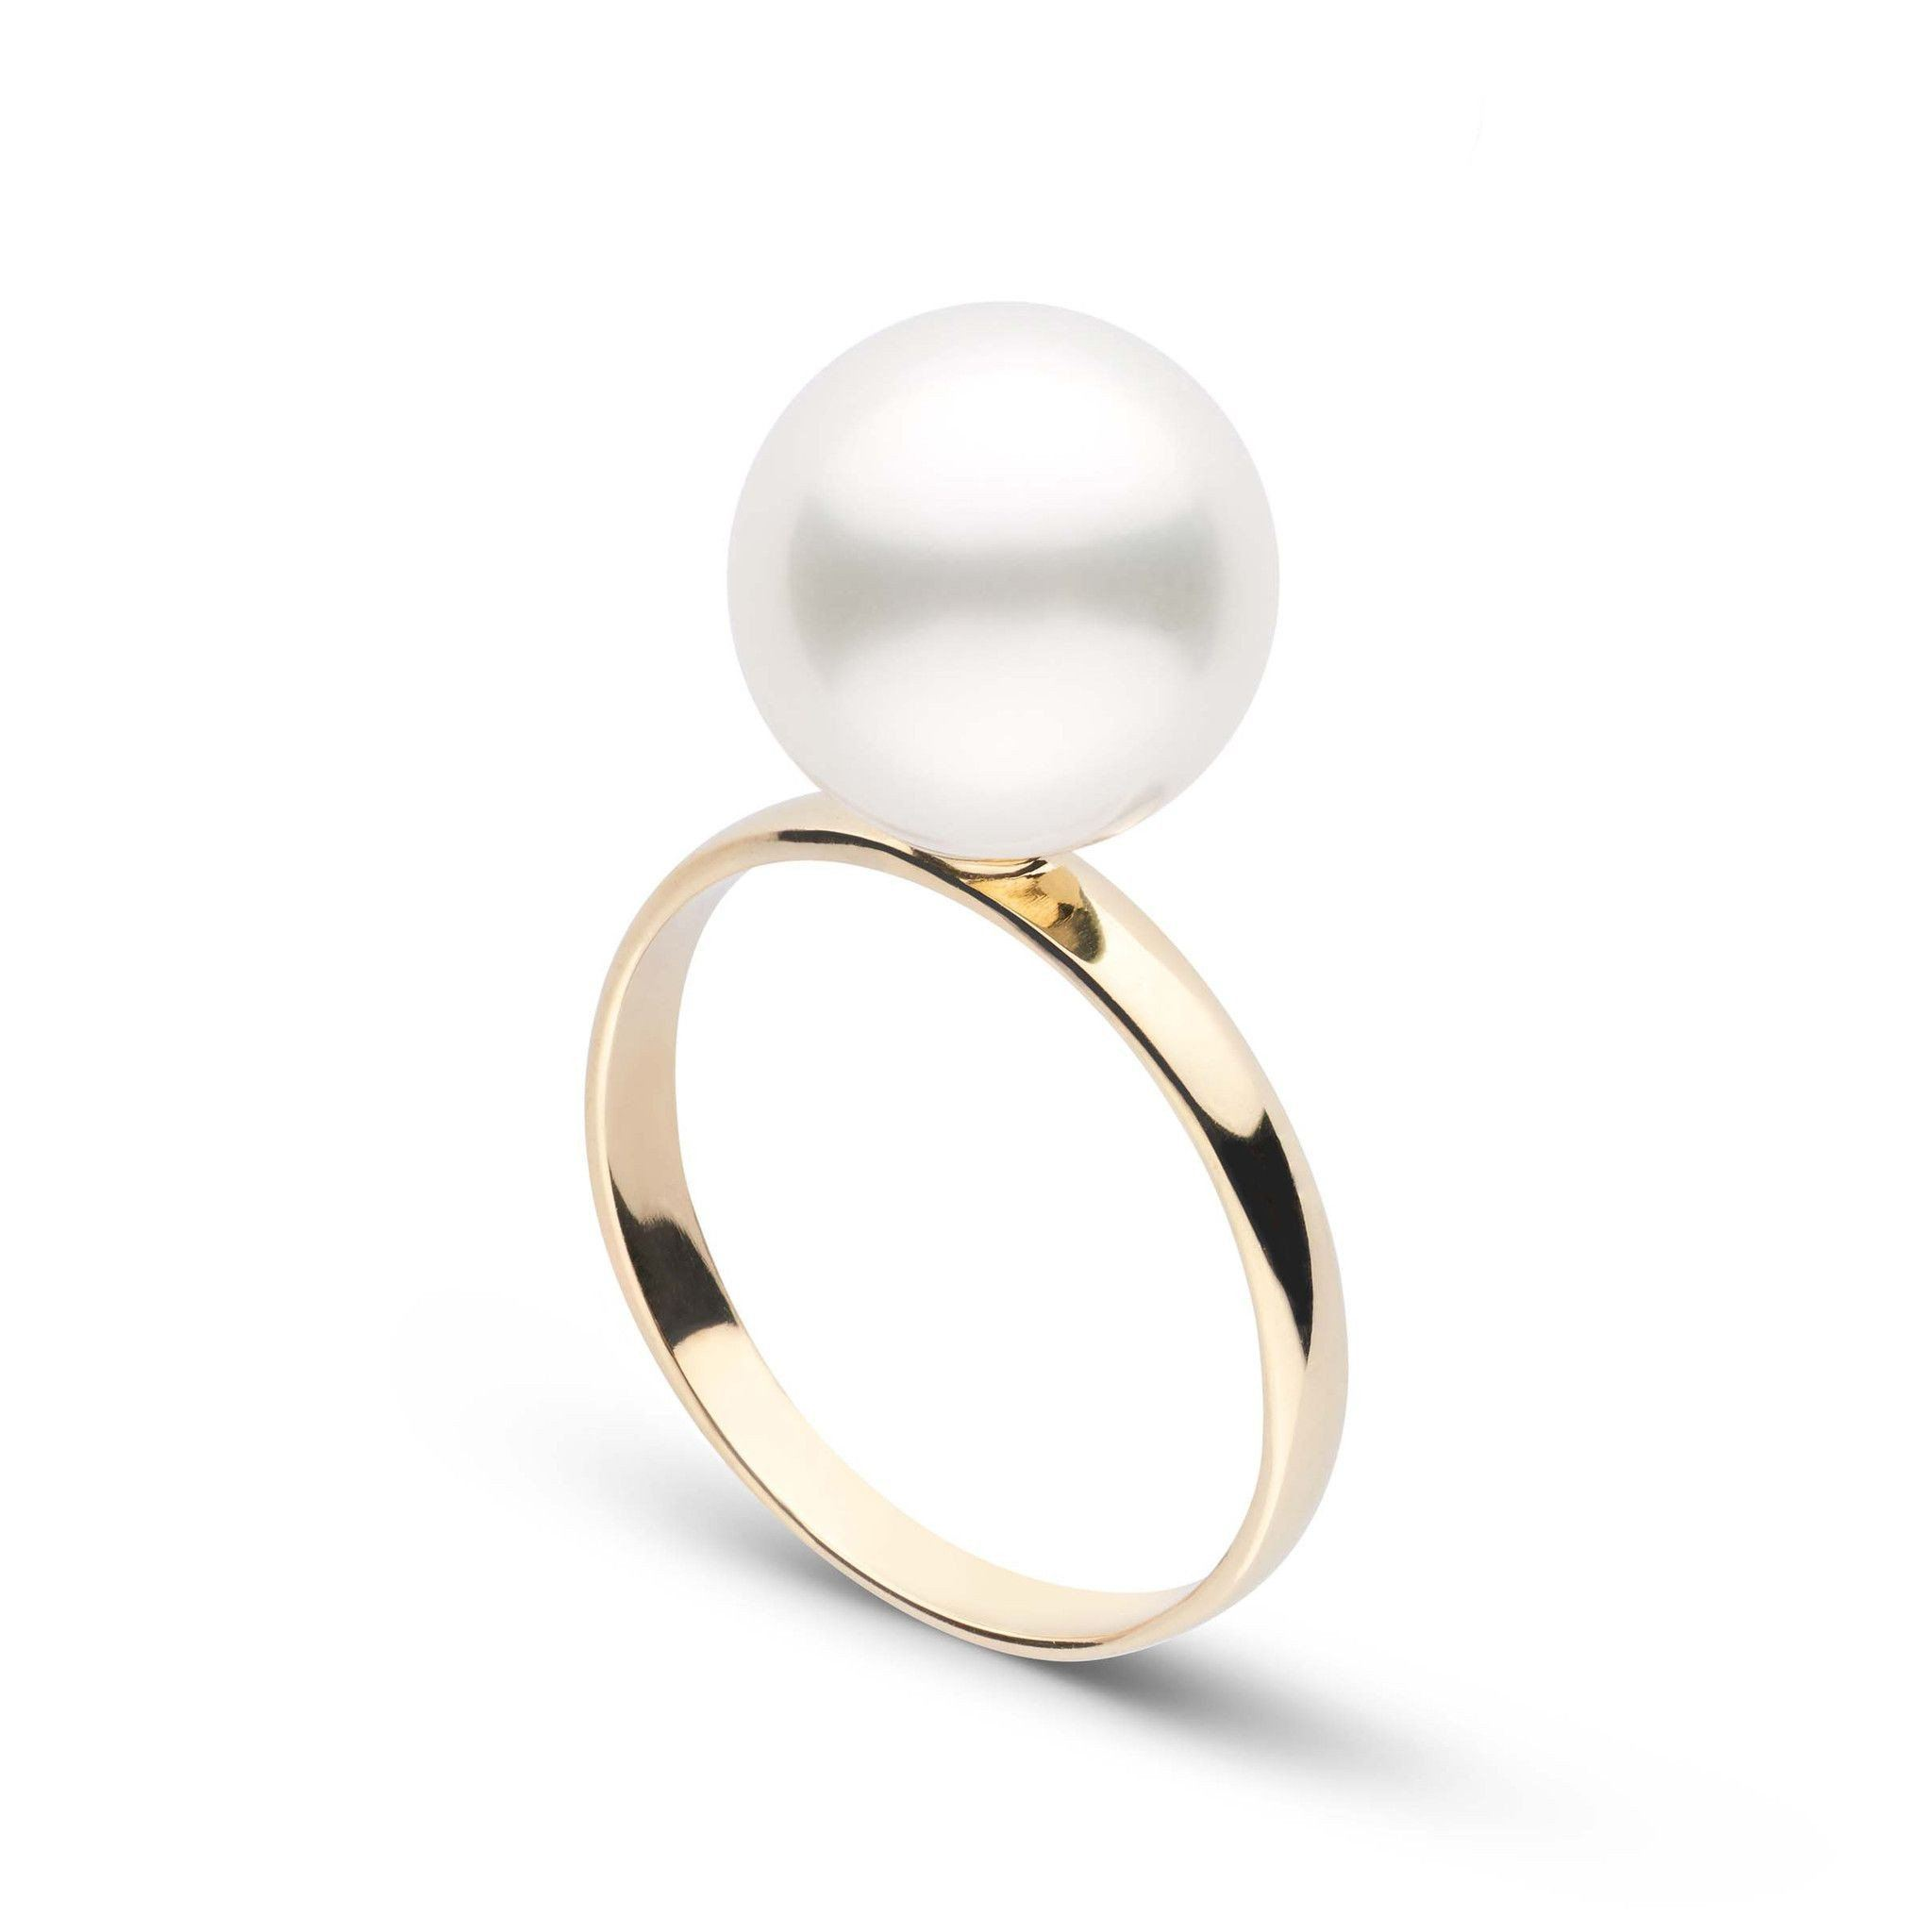 aed9b1820 classic-collection-100-110-mm-white-south-sea-pearl -ring-ring_2048x2048.jpg?v=1523302362